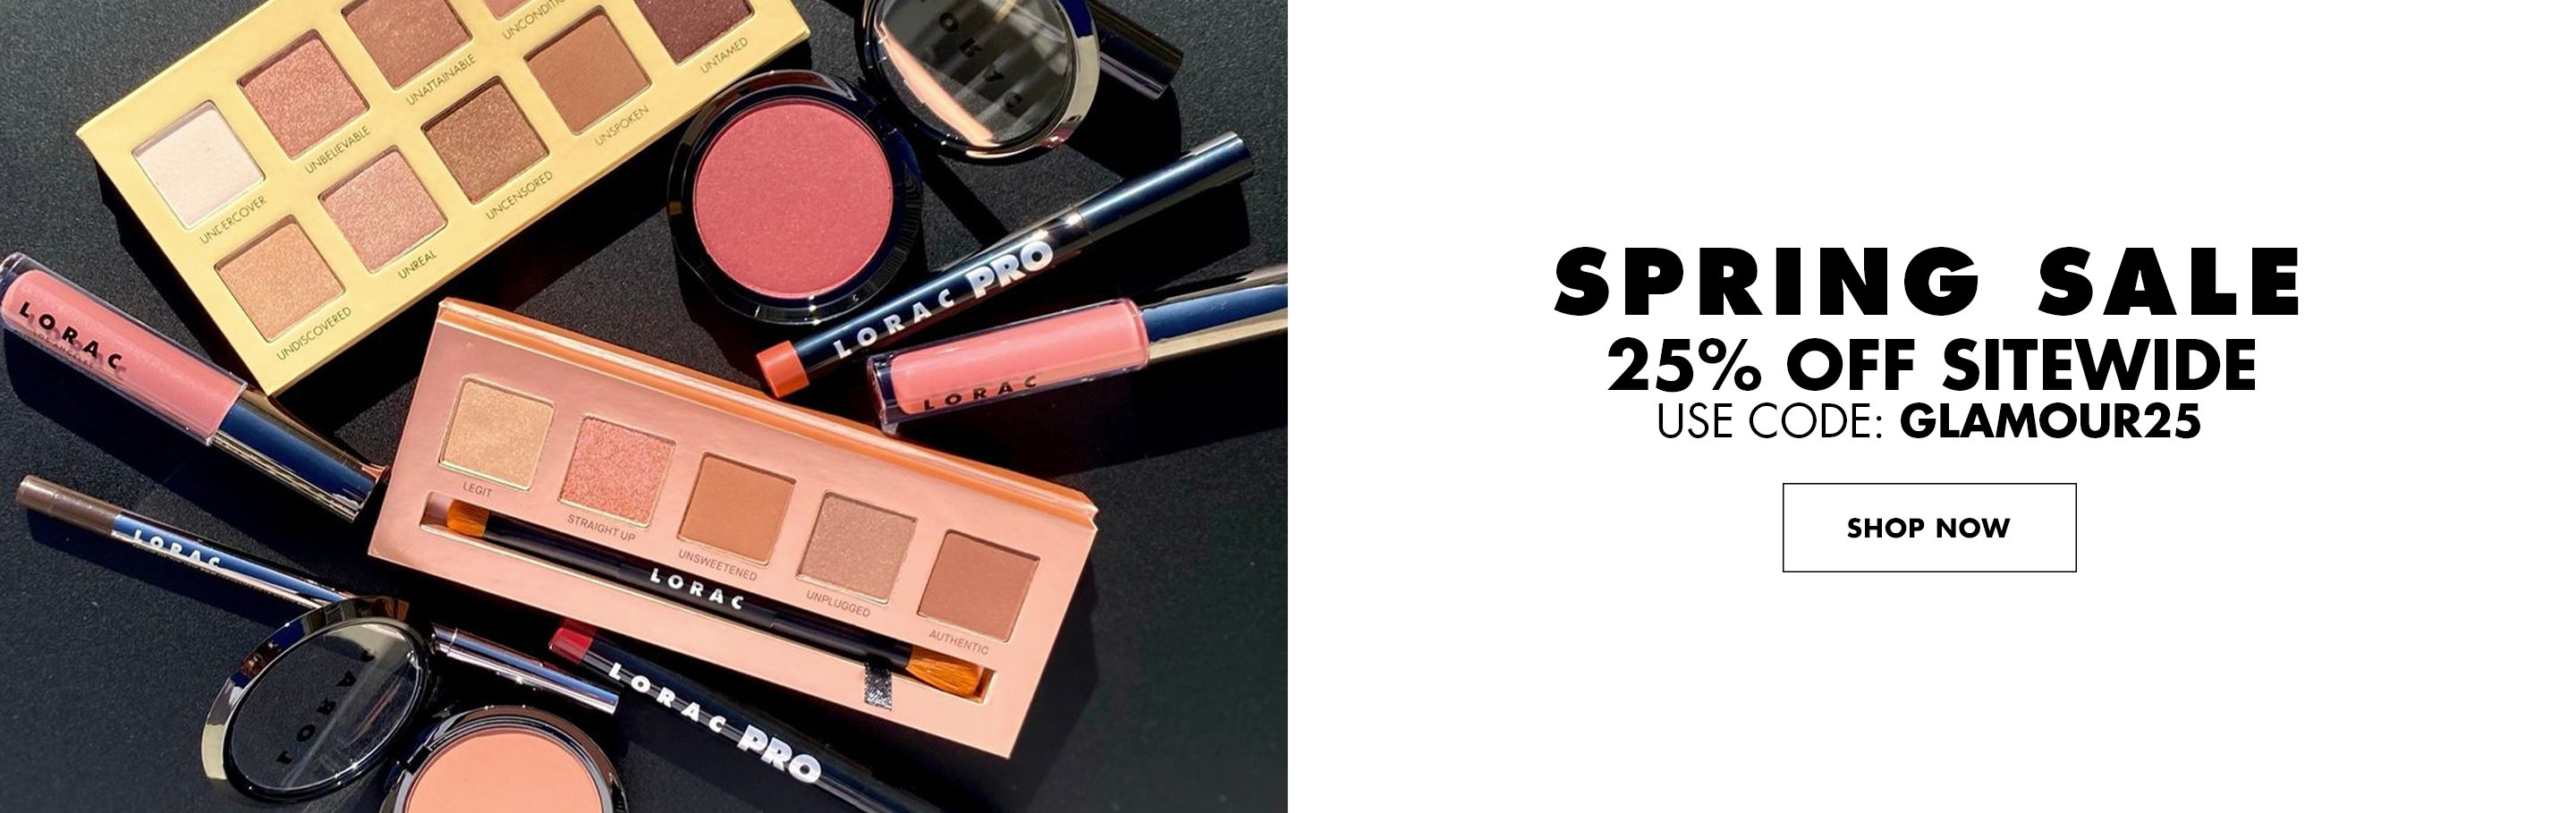 Spring Sale - 25% Off Sitewide - Use Code: Glamour25 | Shop Now | LORAC | Products scattered with black background